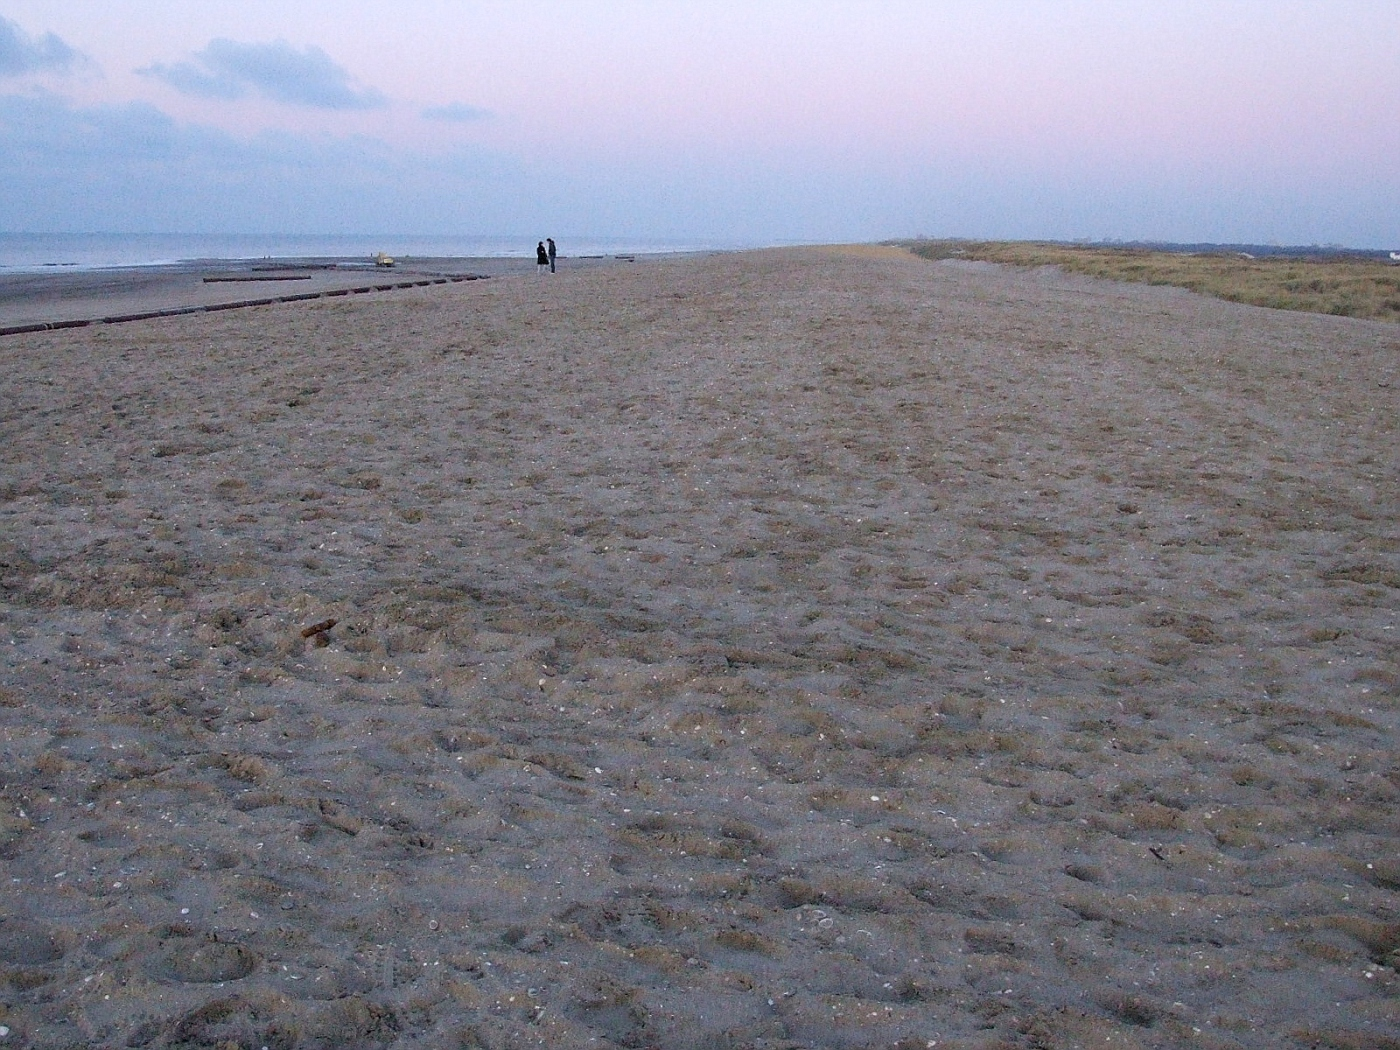 03. Same North direction, the dune must become higher